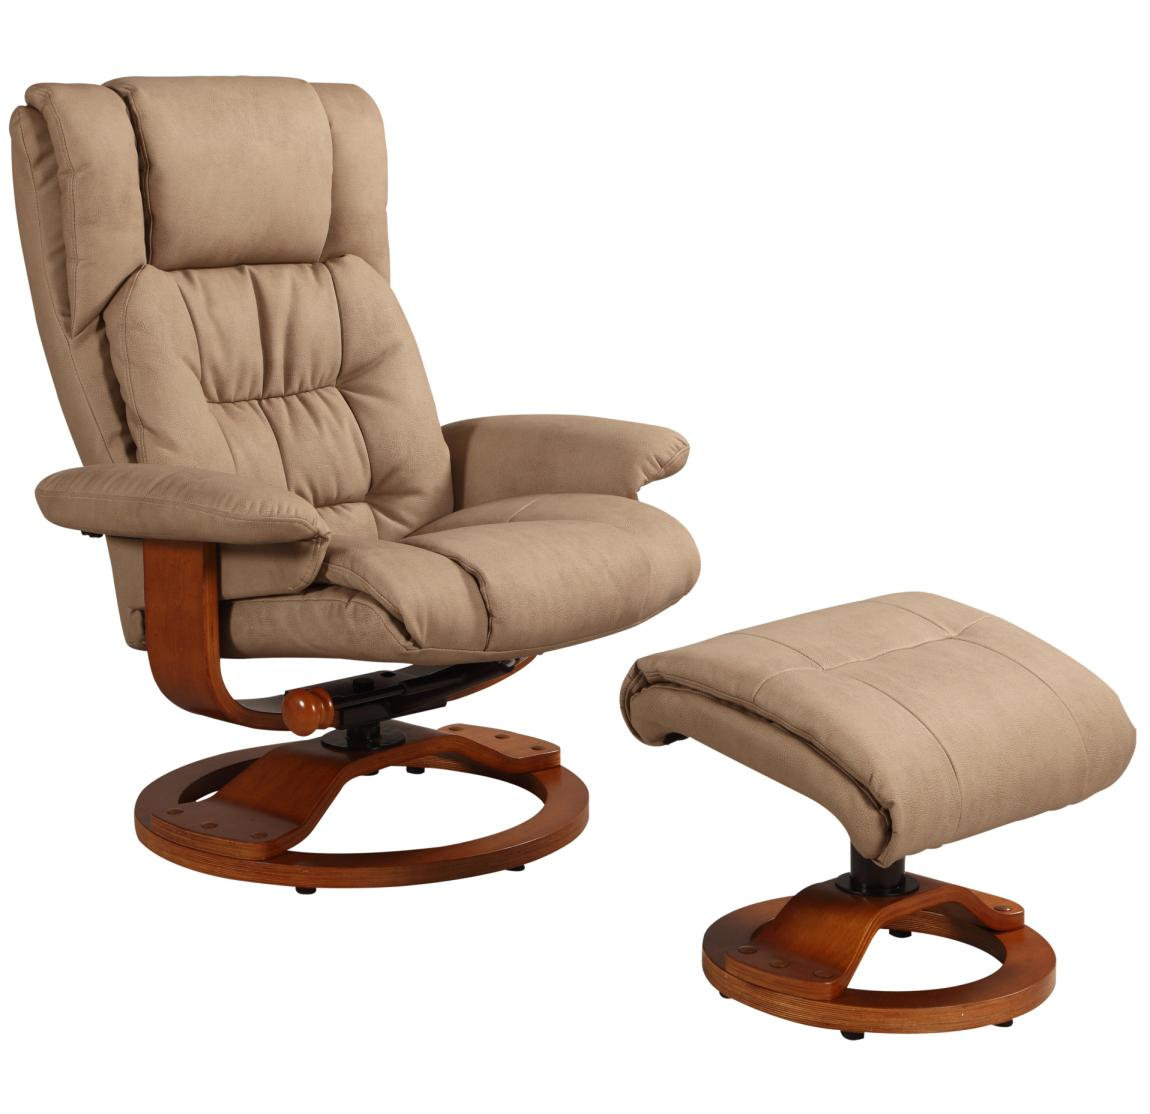 Mac Motion Chairs Mac Motion Chairs Oslo Collection Vinci Reclining Chair And